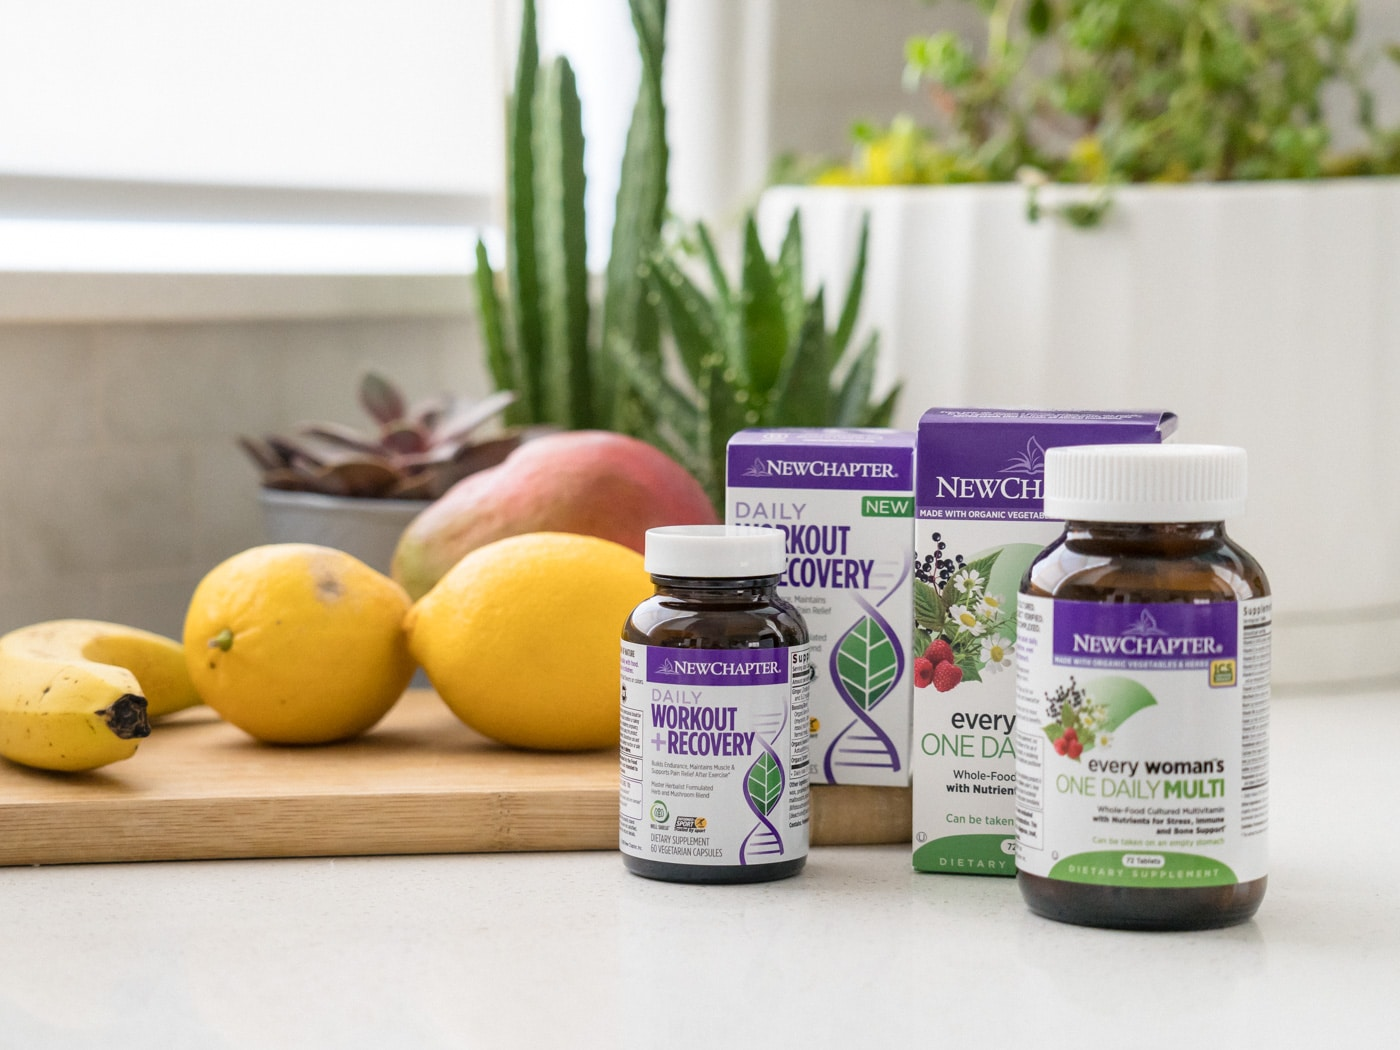 Morning routine with fruits and supplements